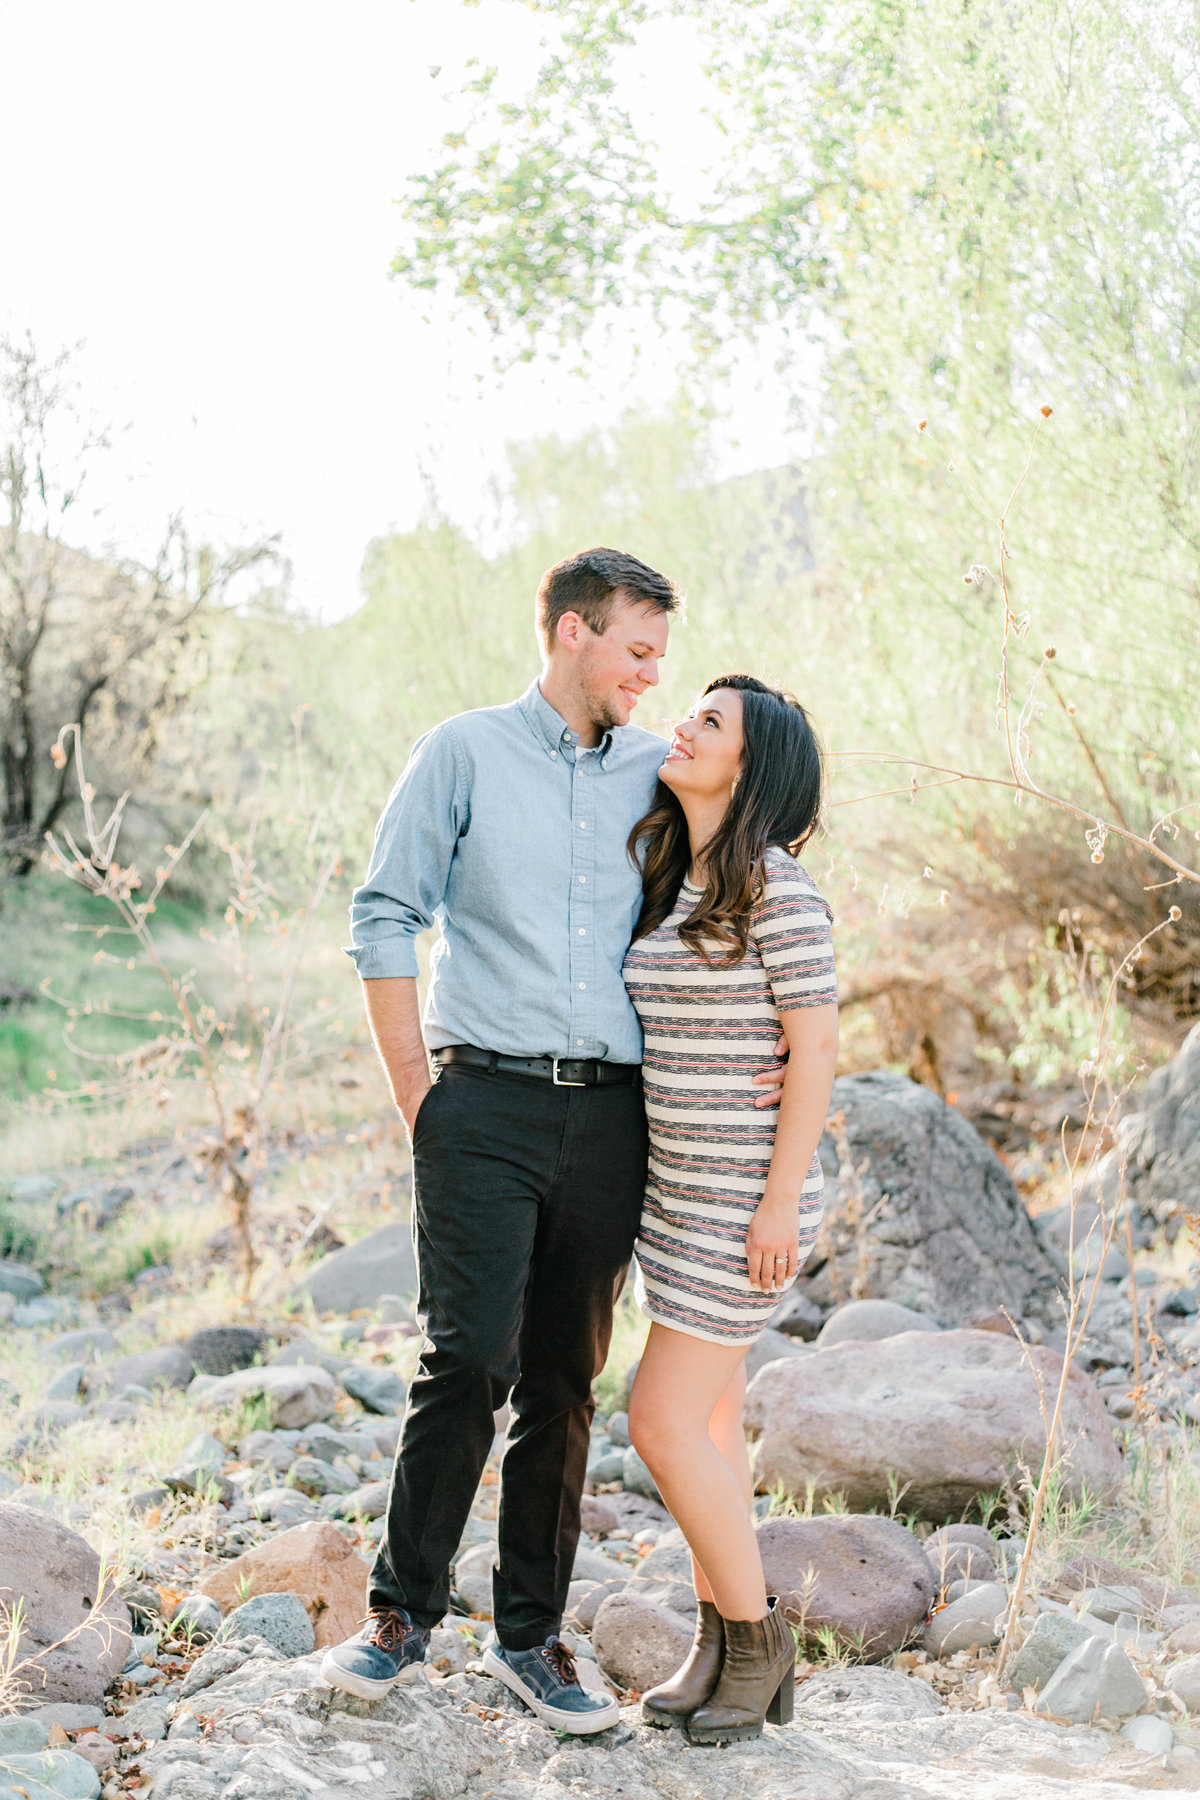 Karlie Colleen Photography - Claire & PJ - Engagement Session-213